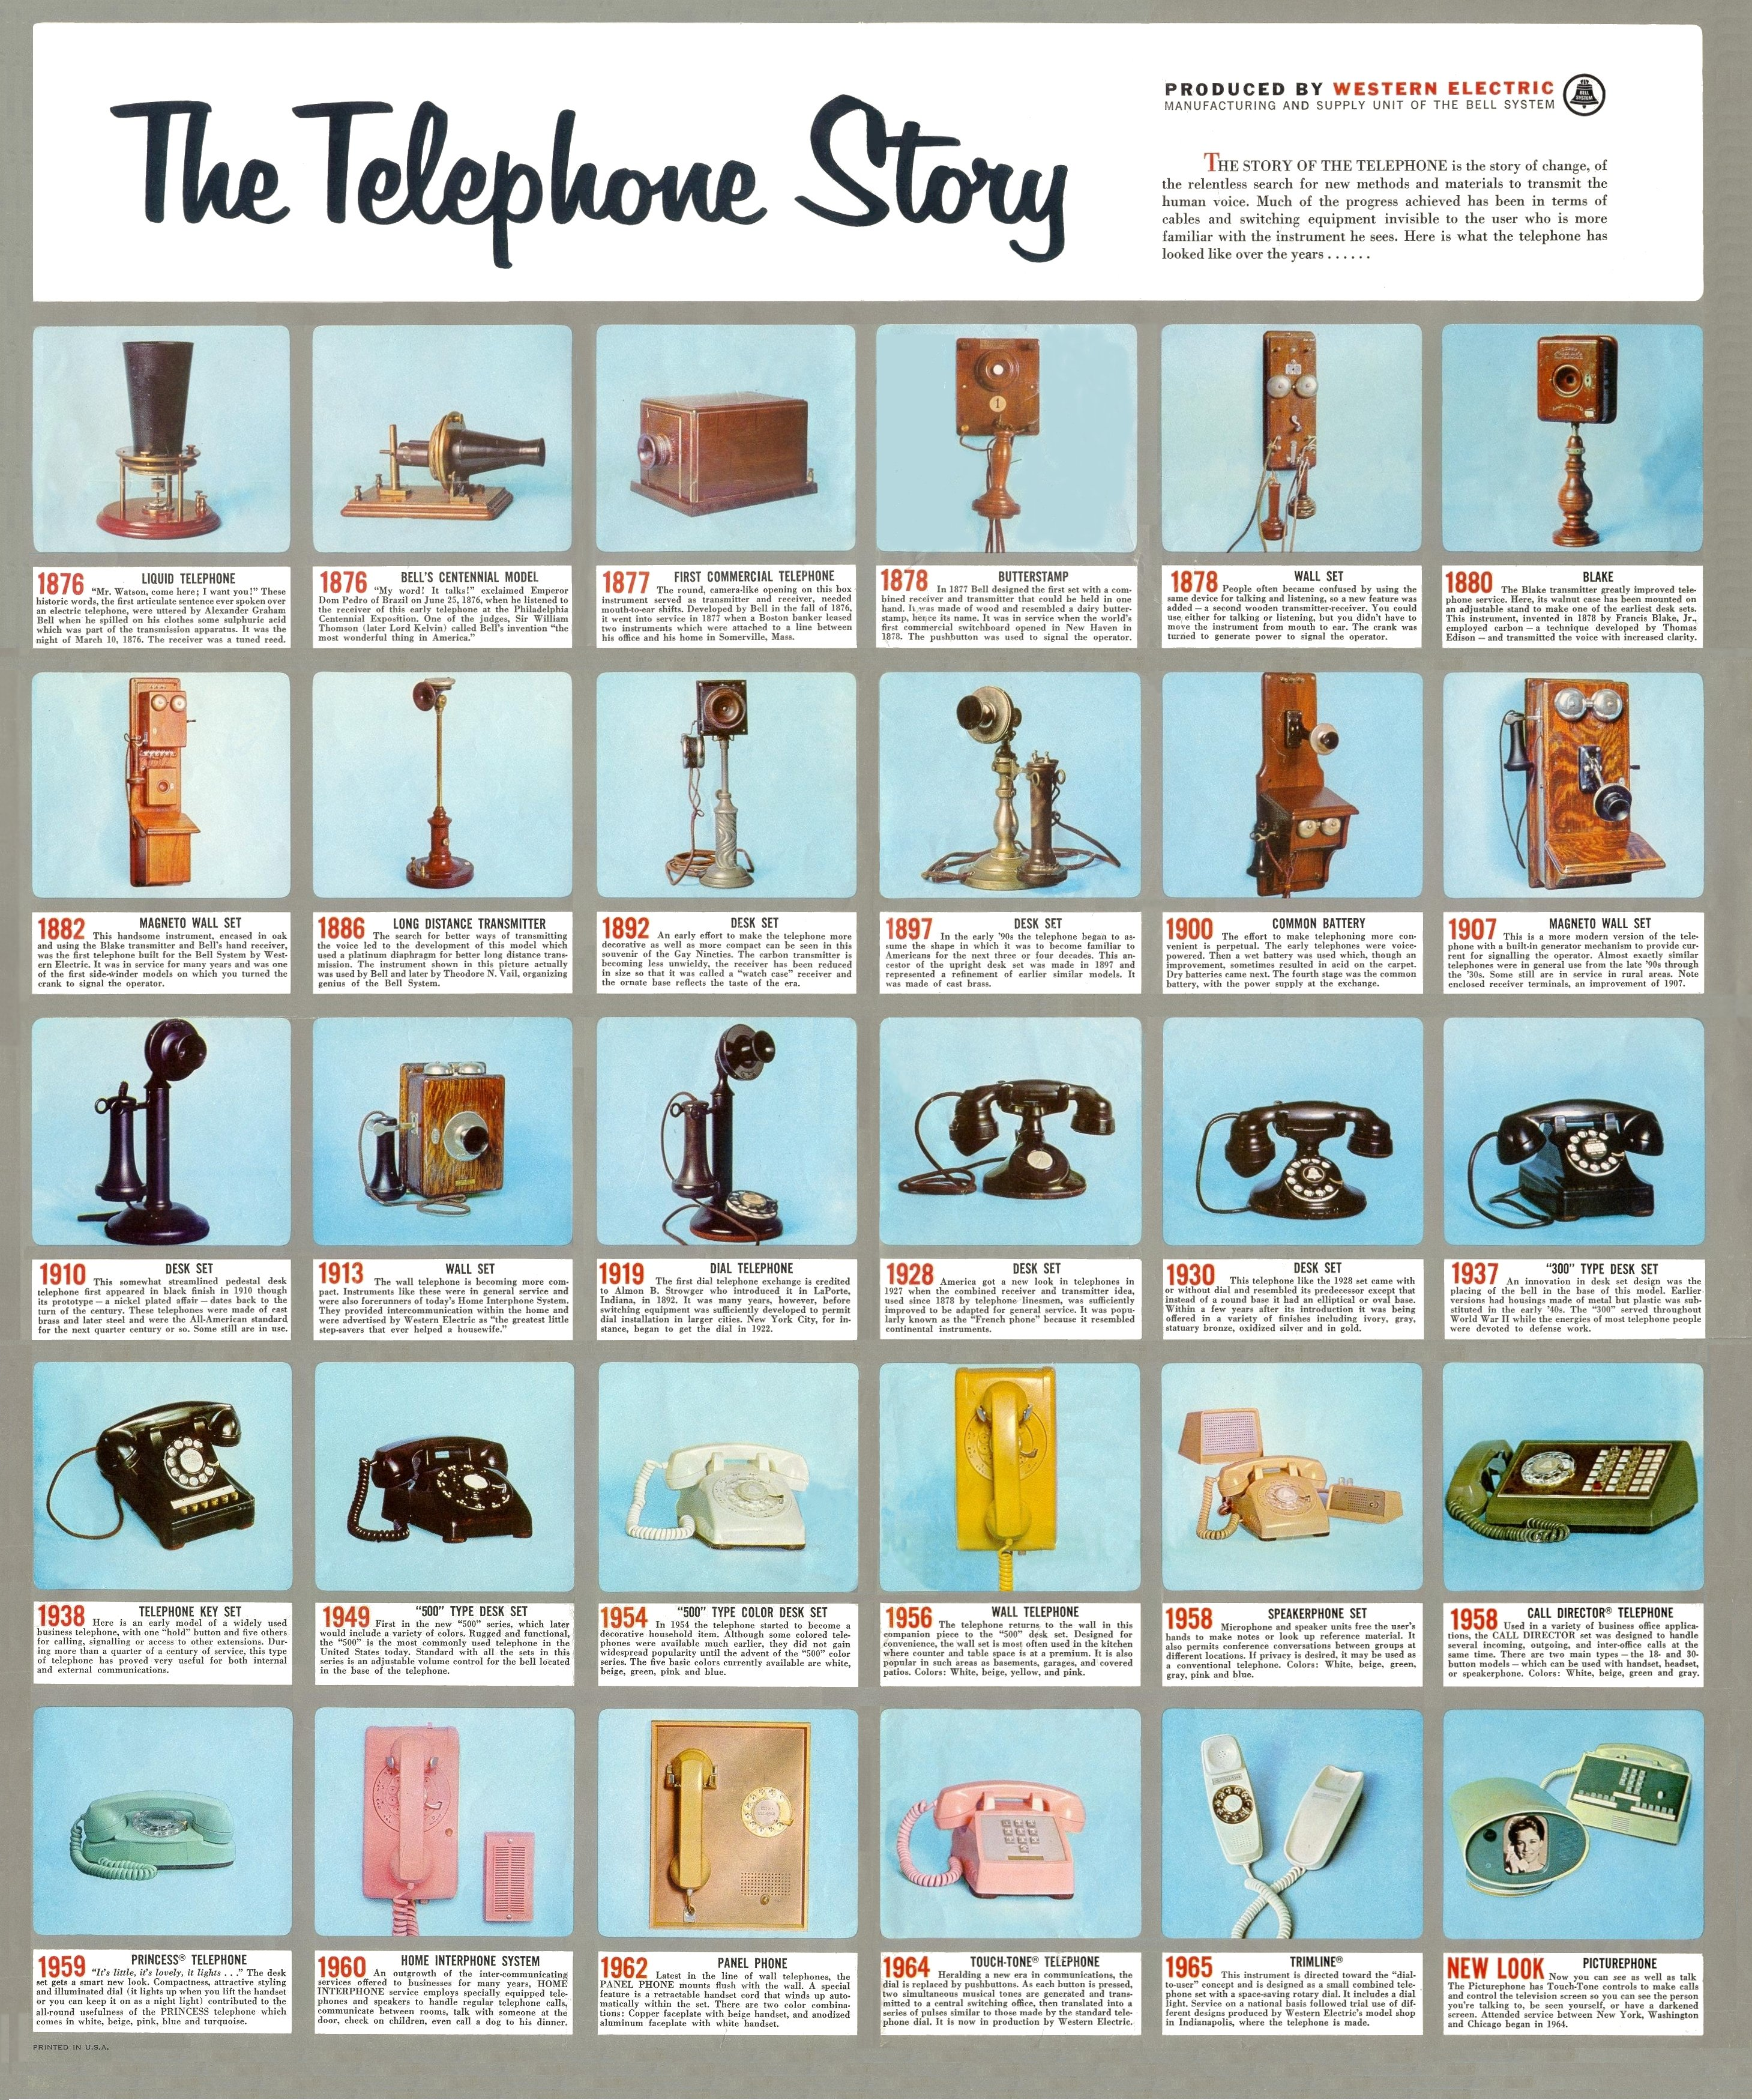 Bell System Documents Trimline Telephone Wiring Diagram 1965 Western Electric Story Poster